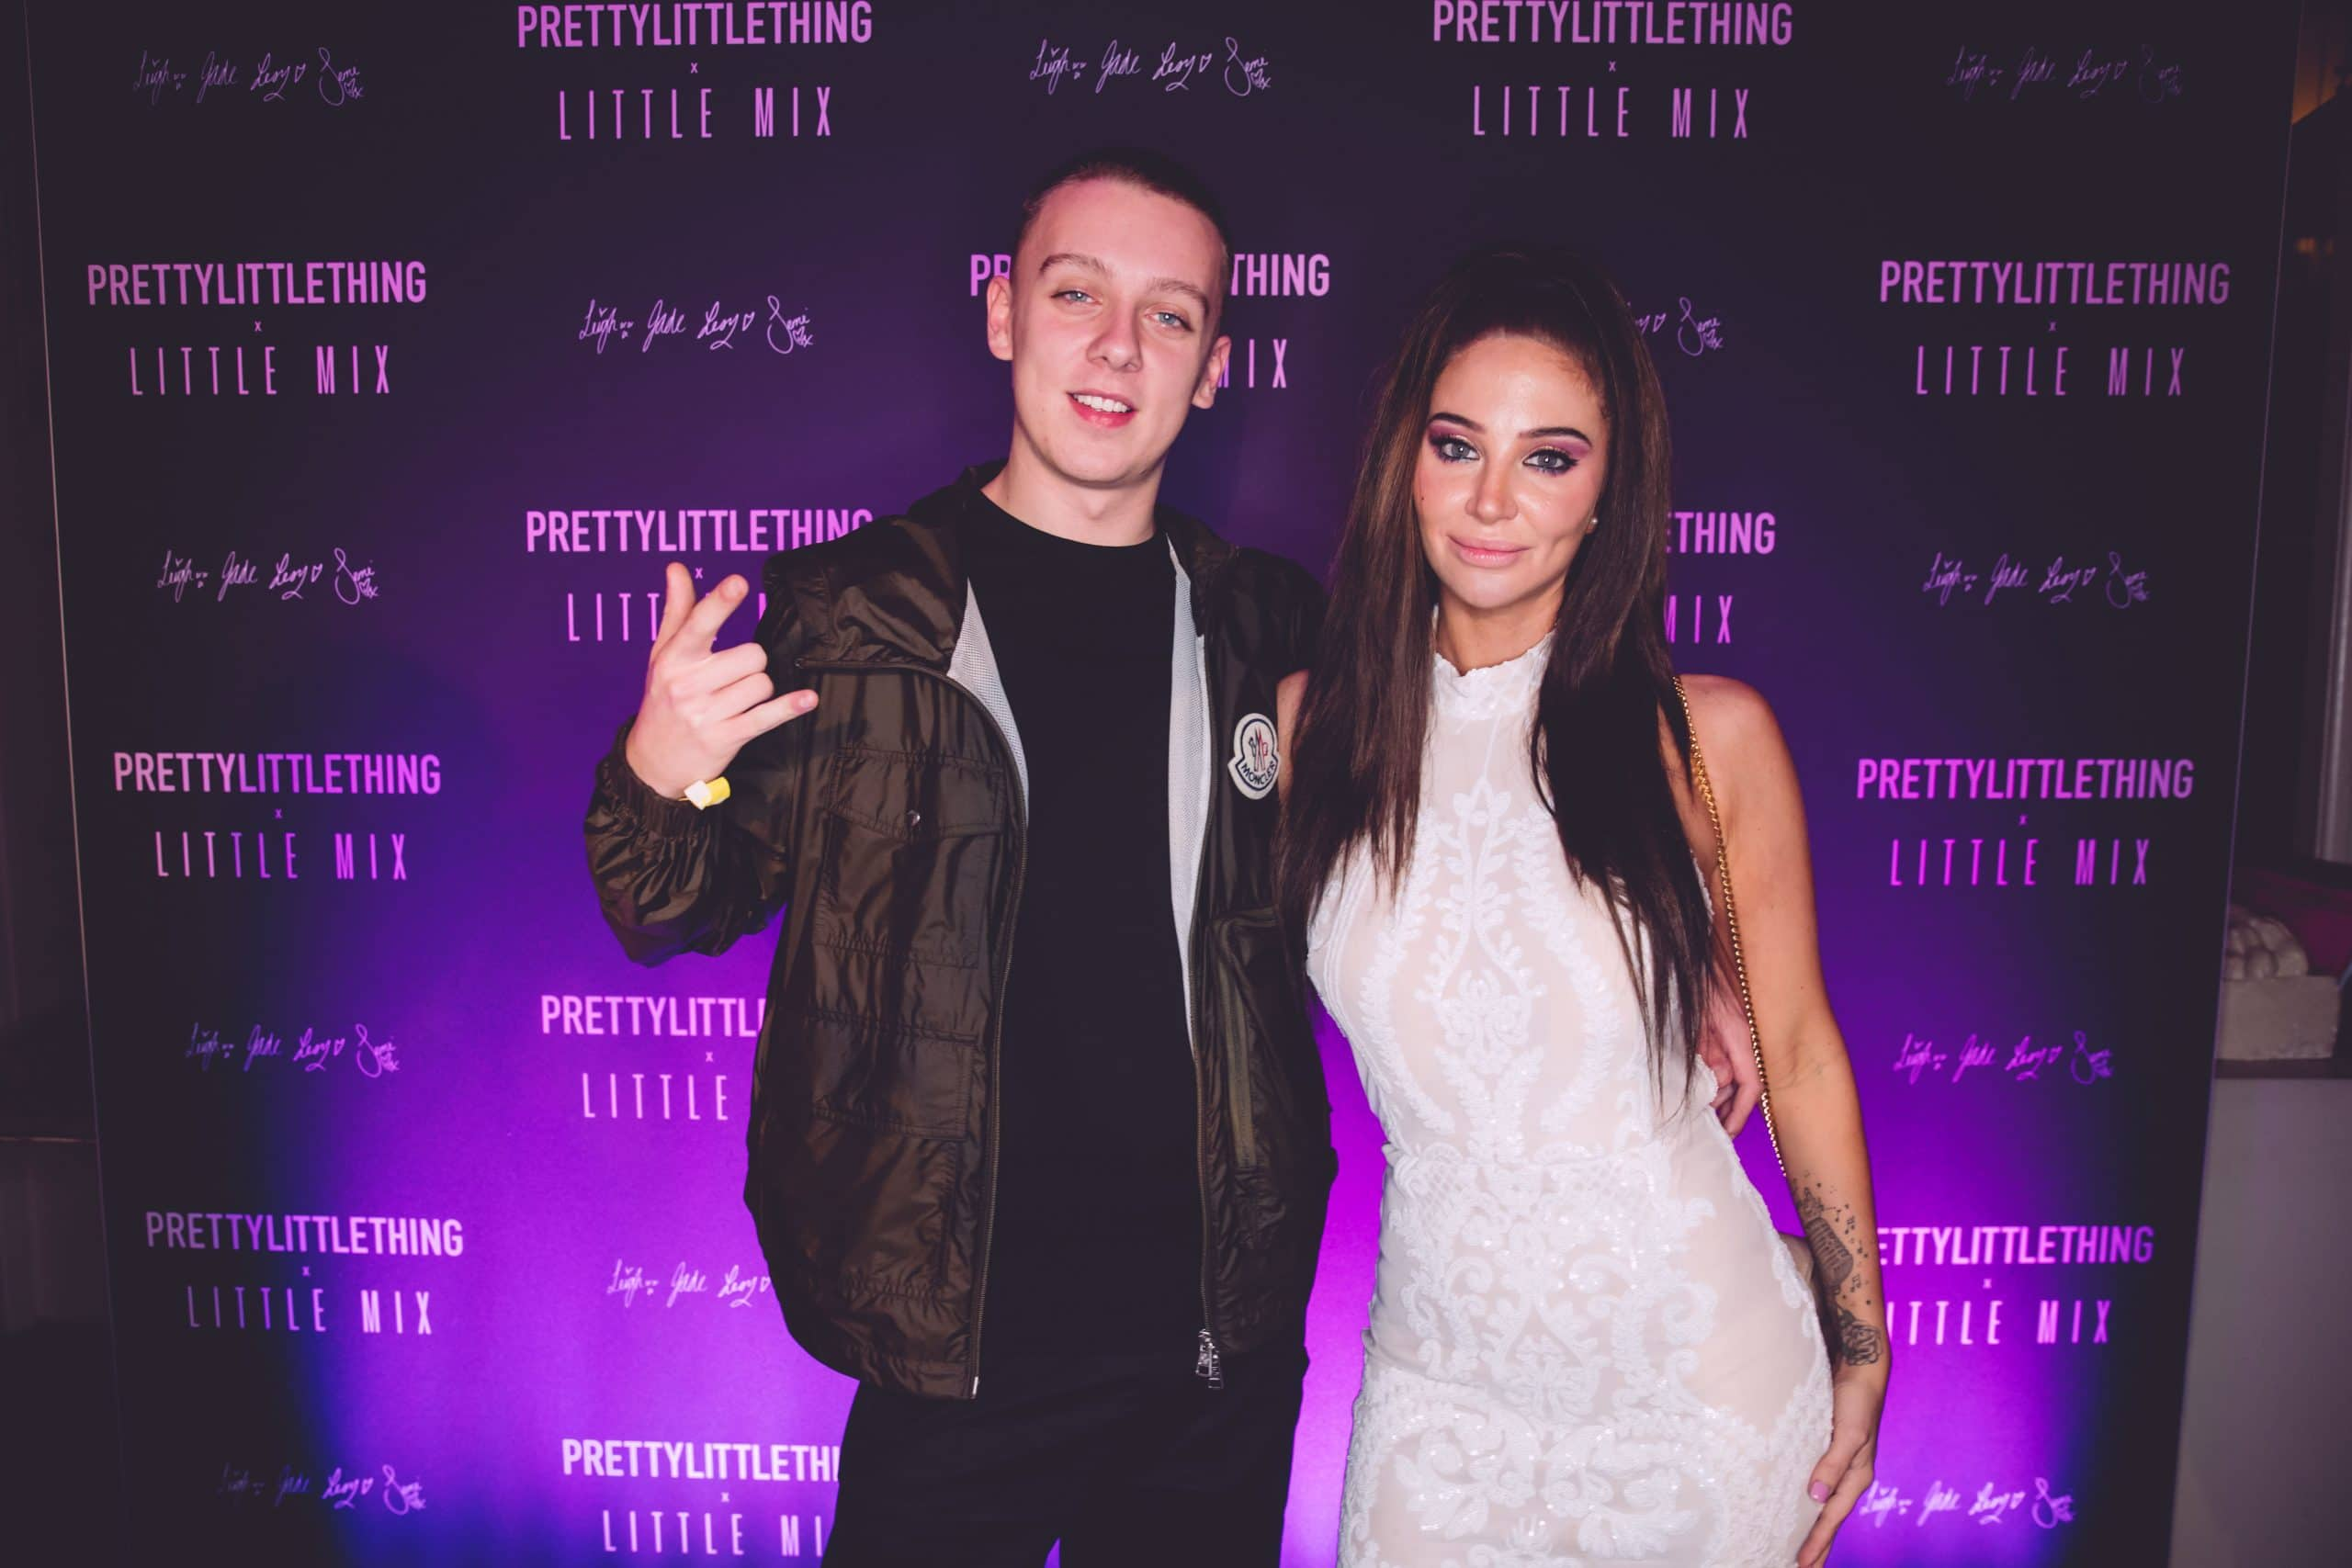 Aitch & Tulisa at the Little Mix & Pretty Little Thing launch party